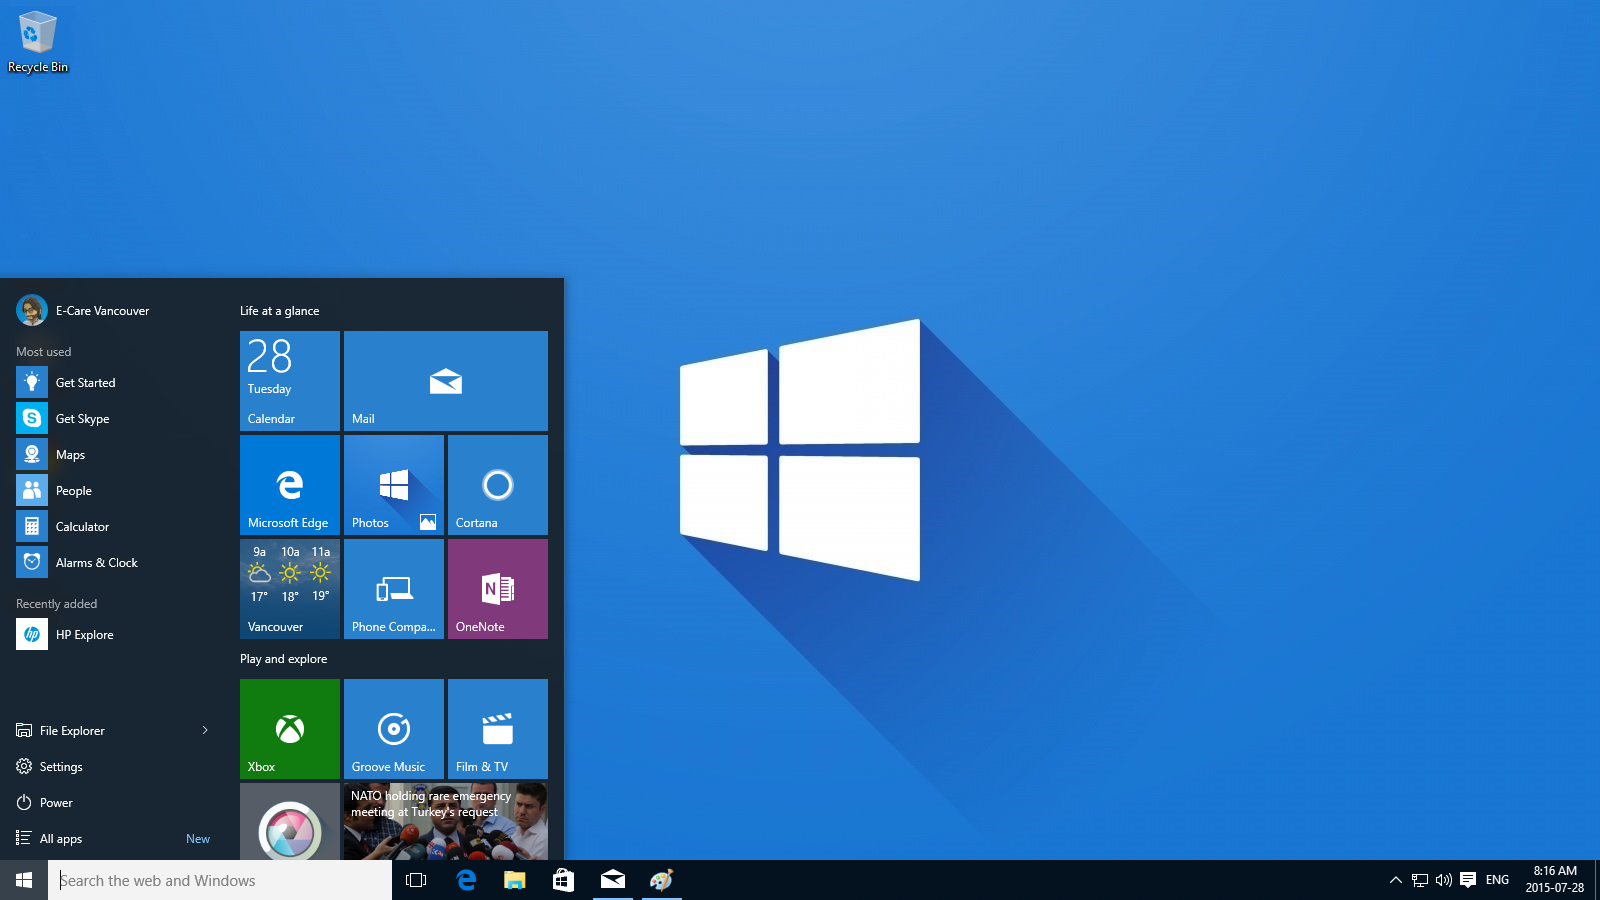 Windows 10 Desktop and Start Menu